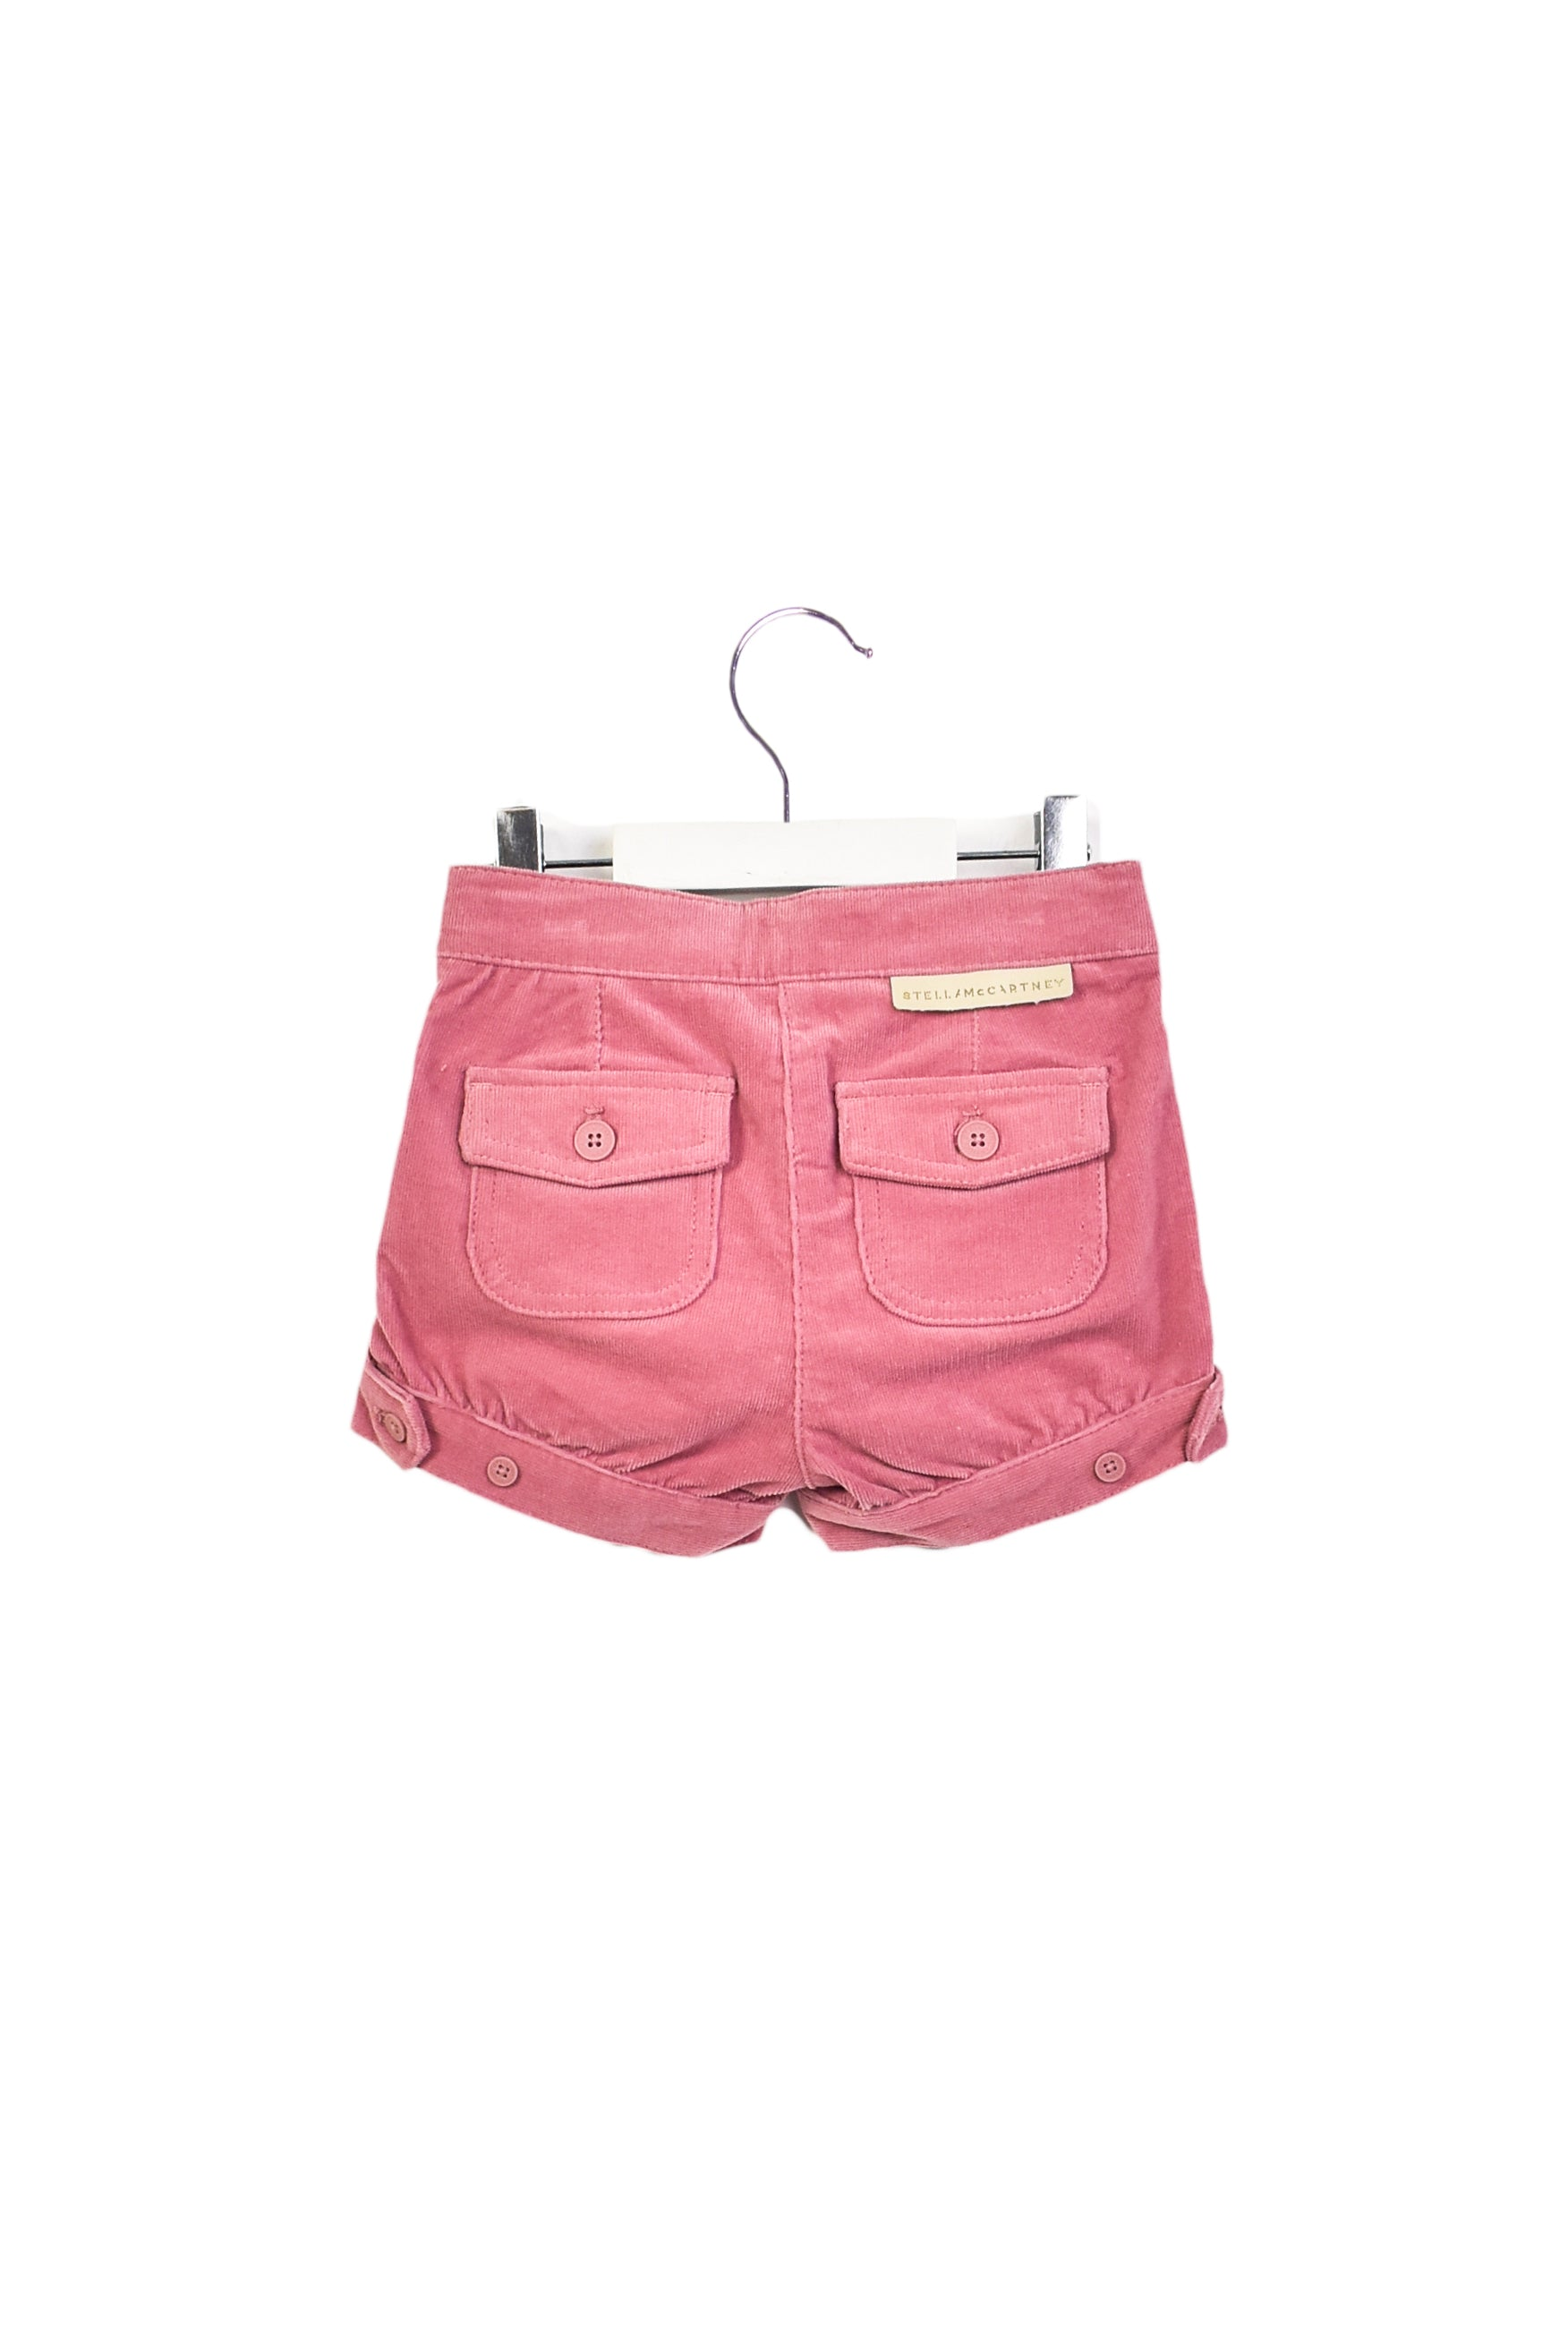 10013356 Stella McCartney Kids ~ Shorts 4T at Retykle